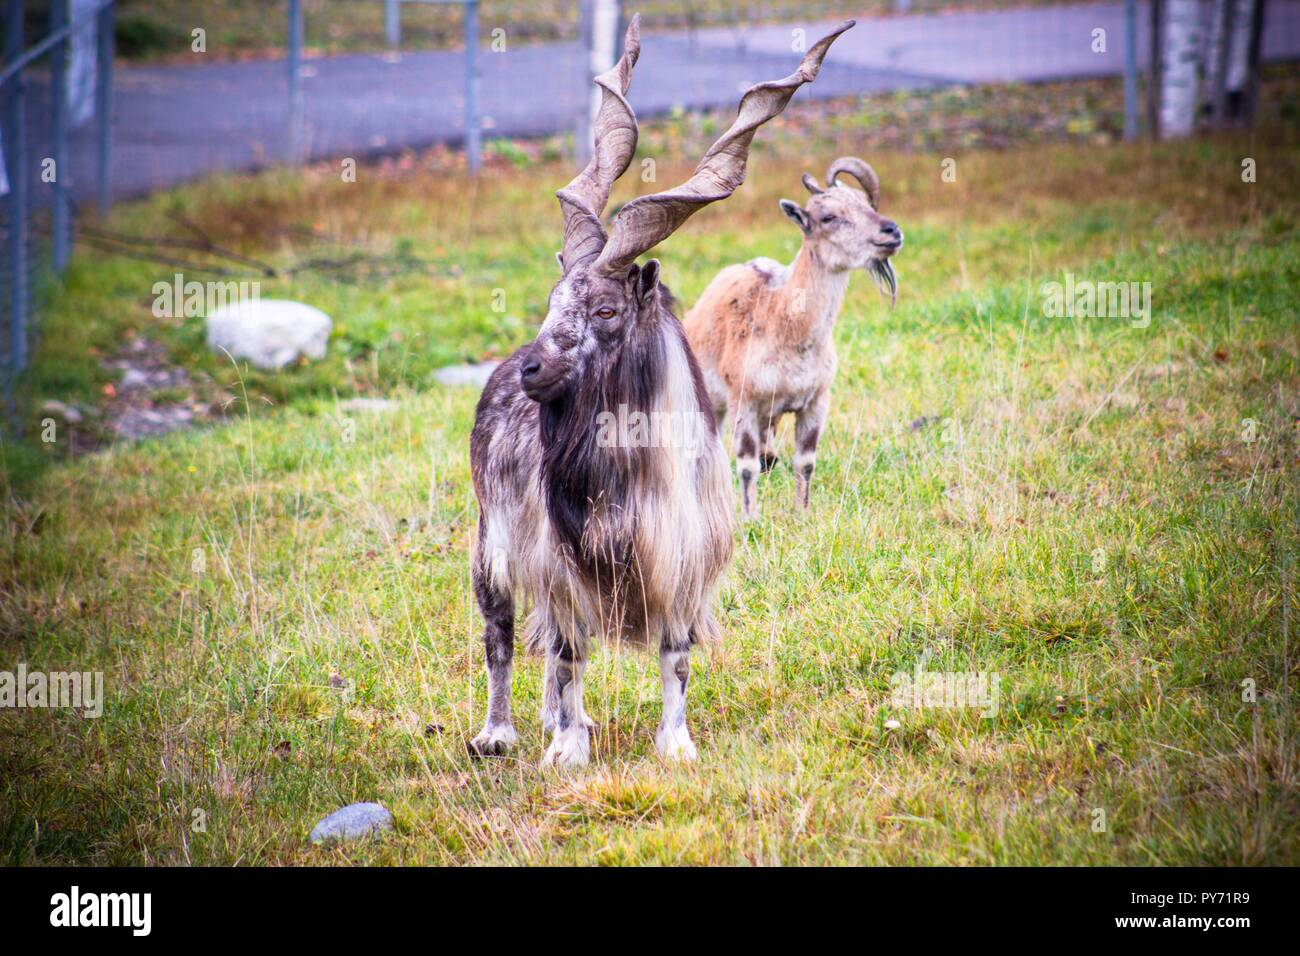 Wild mountain sheep with huge horns twisted into a spiral. The animal lives in a good reserve over a large area. - Stock Image